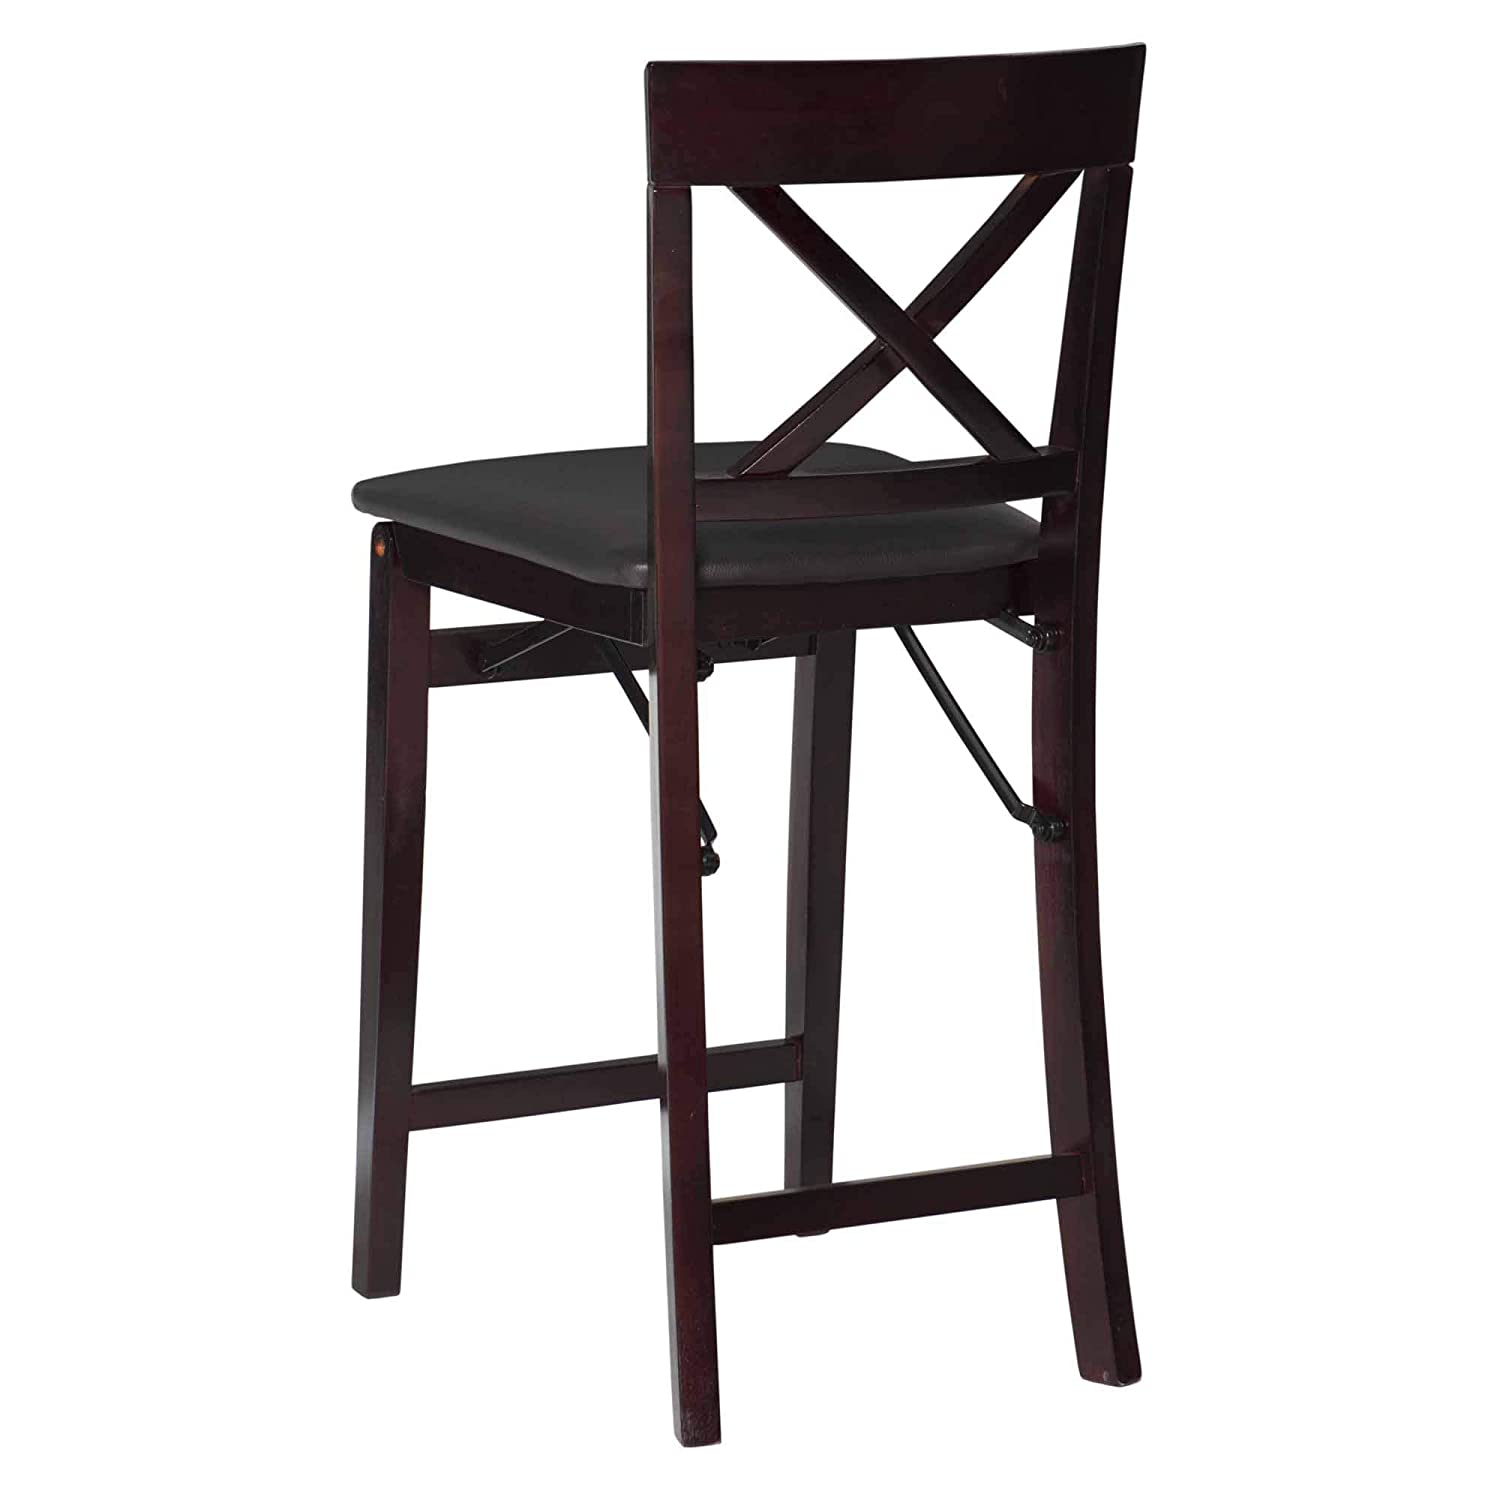 Linon 01850ESP01ASU Triena X Back Folding Counter Stool, Brown